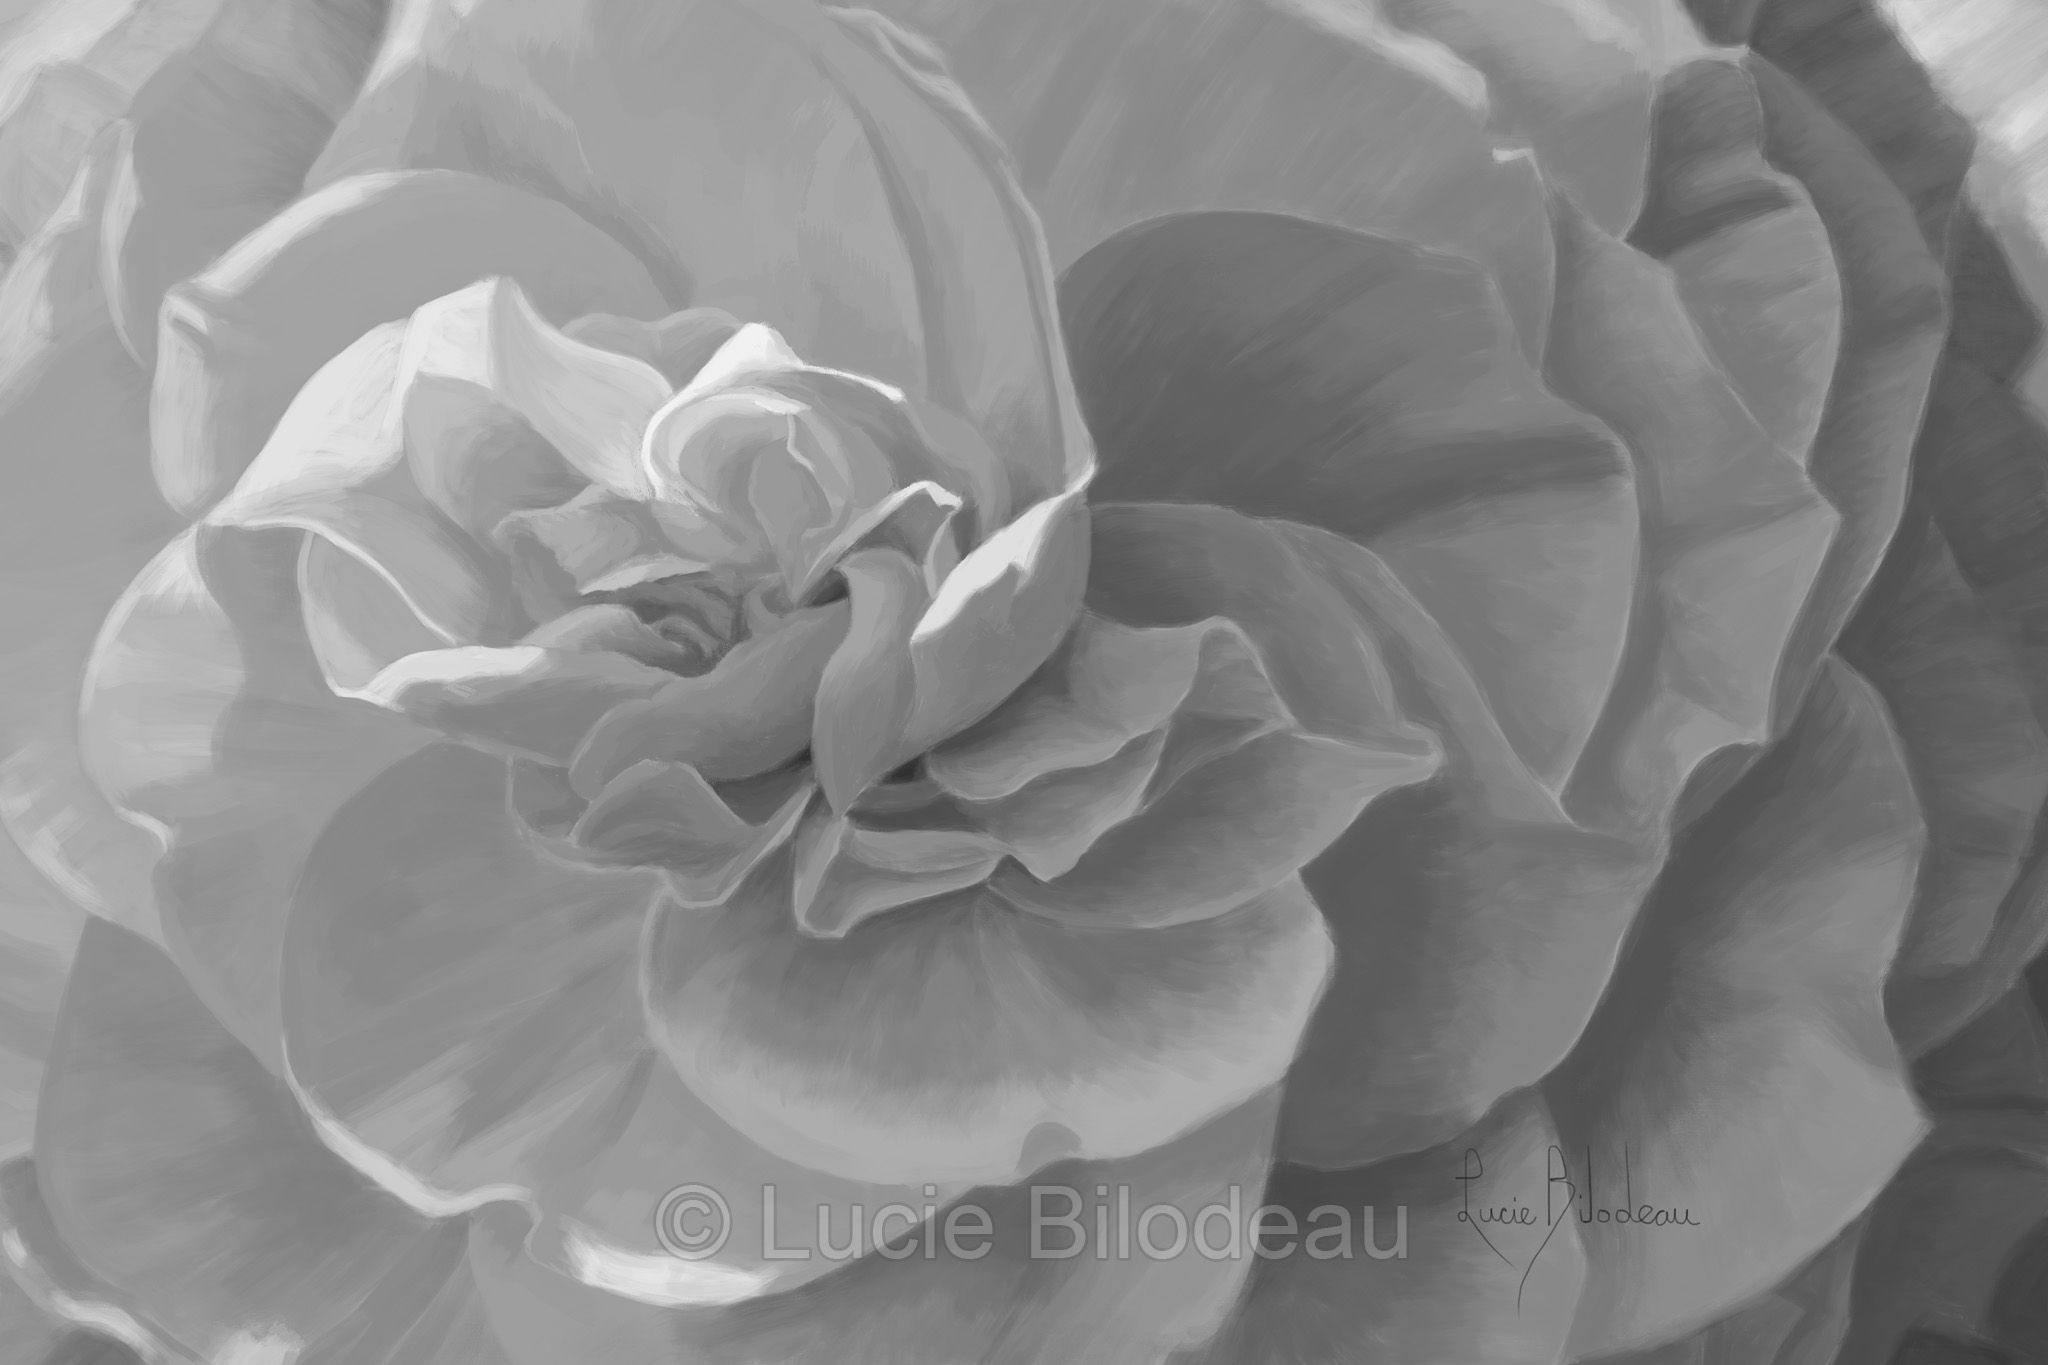 Black And White Version Of Lucie Bilodeaus Painting Cheerful